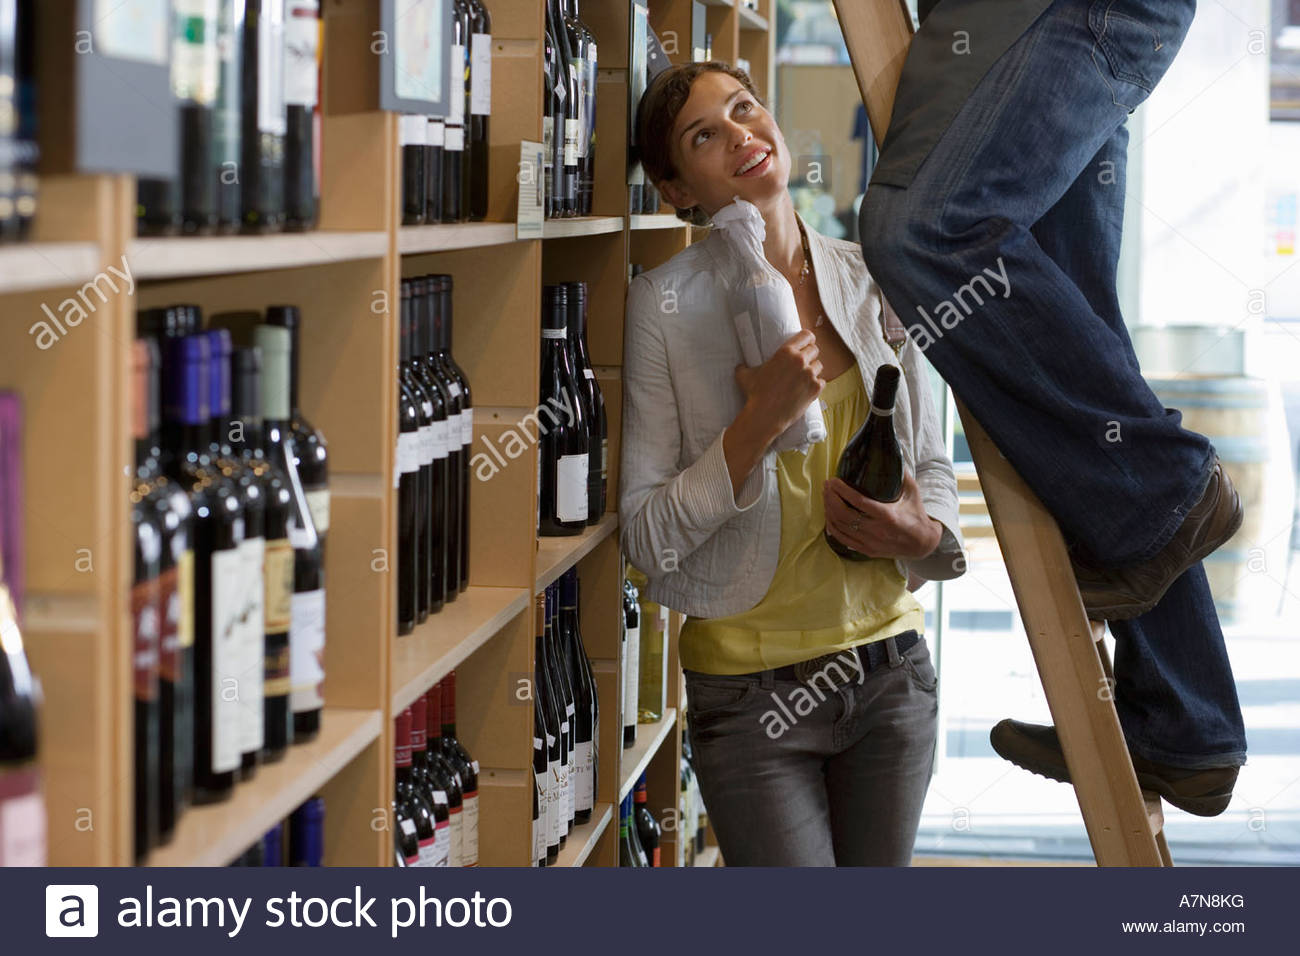 Customer talking to shop owner in off licence man standing on step ladder woman holding bottles - Stock Image